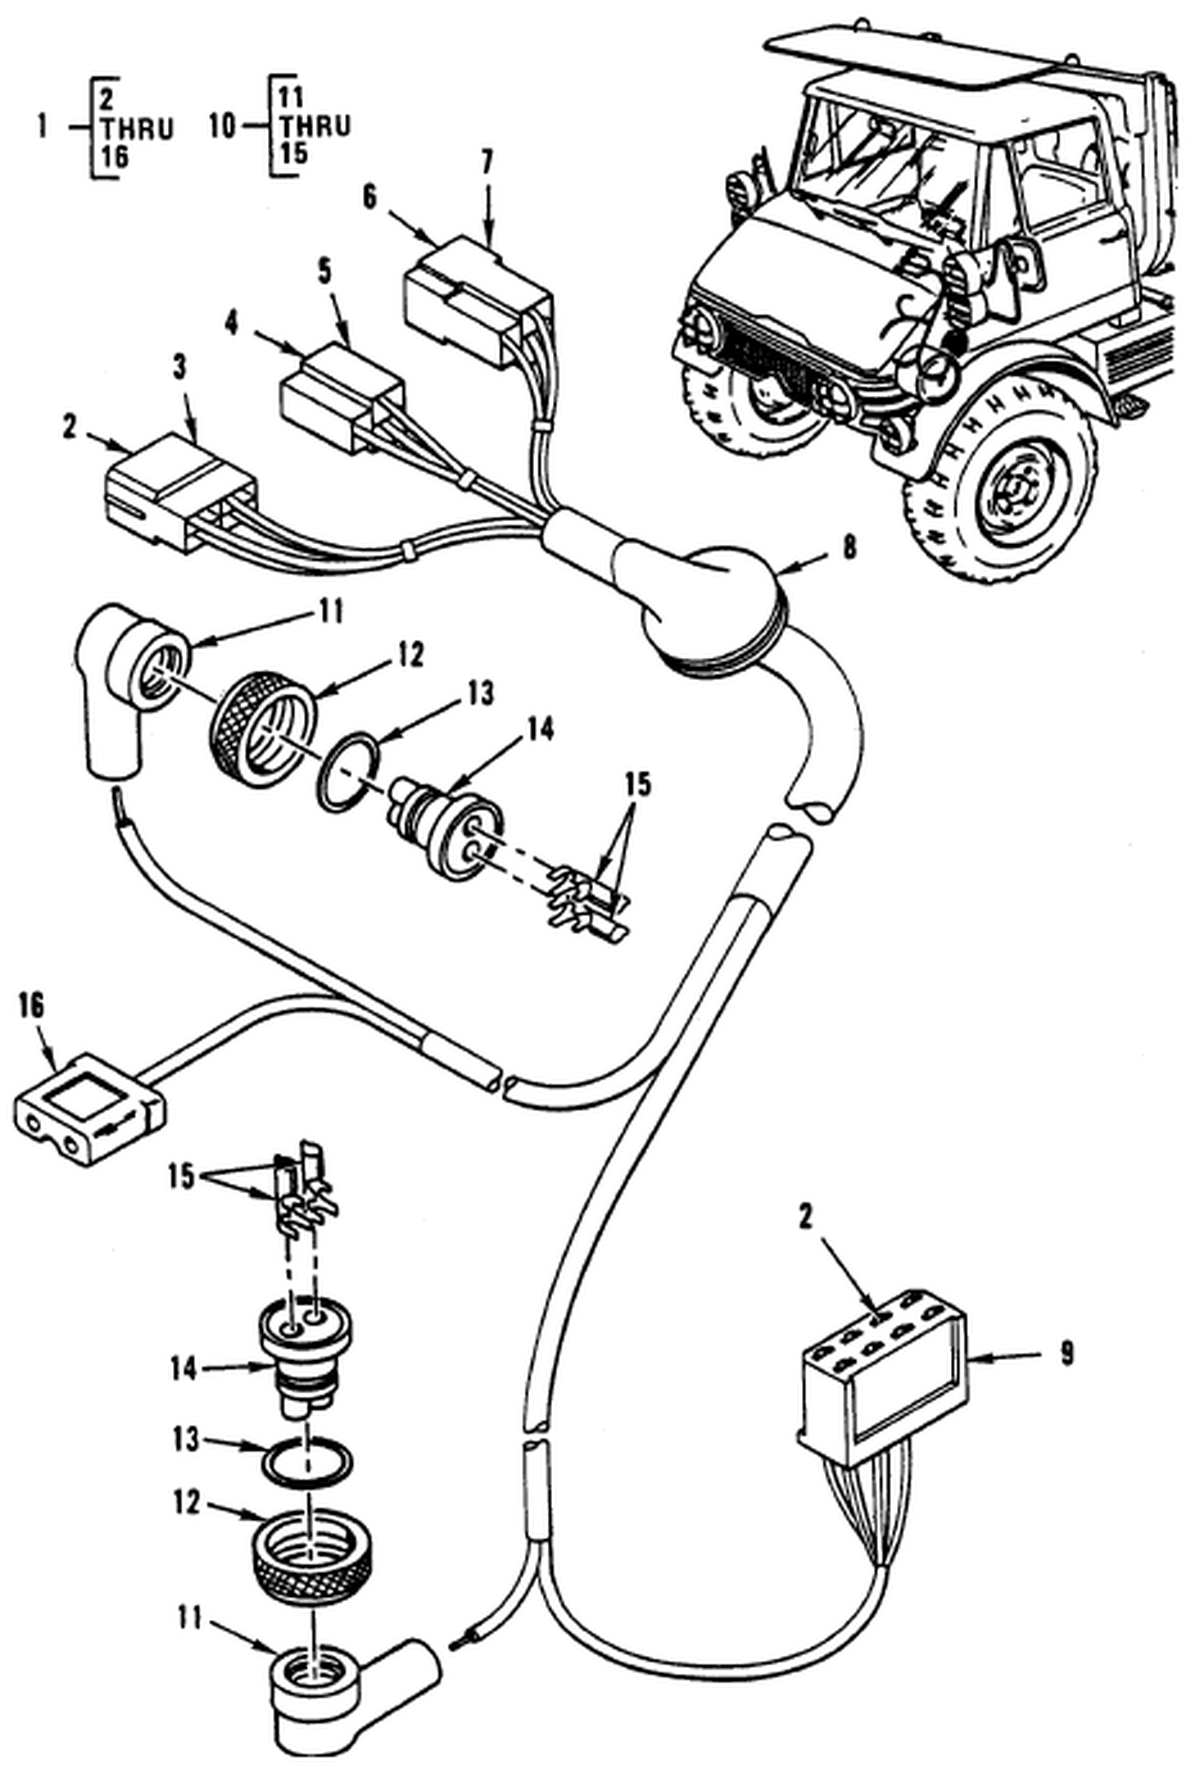 00 2 Figure 90 Hull Or Chassis Wiring Harness Hazard Warning Light Wiring Harness And